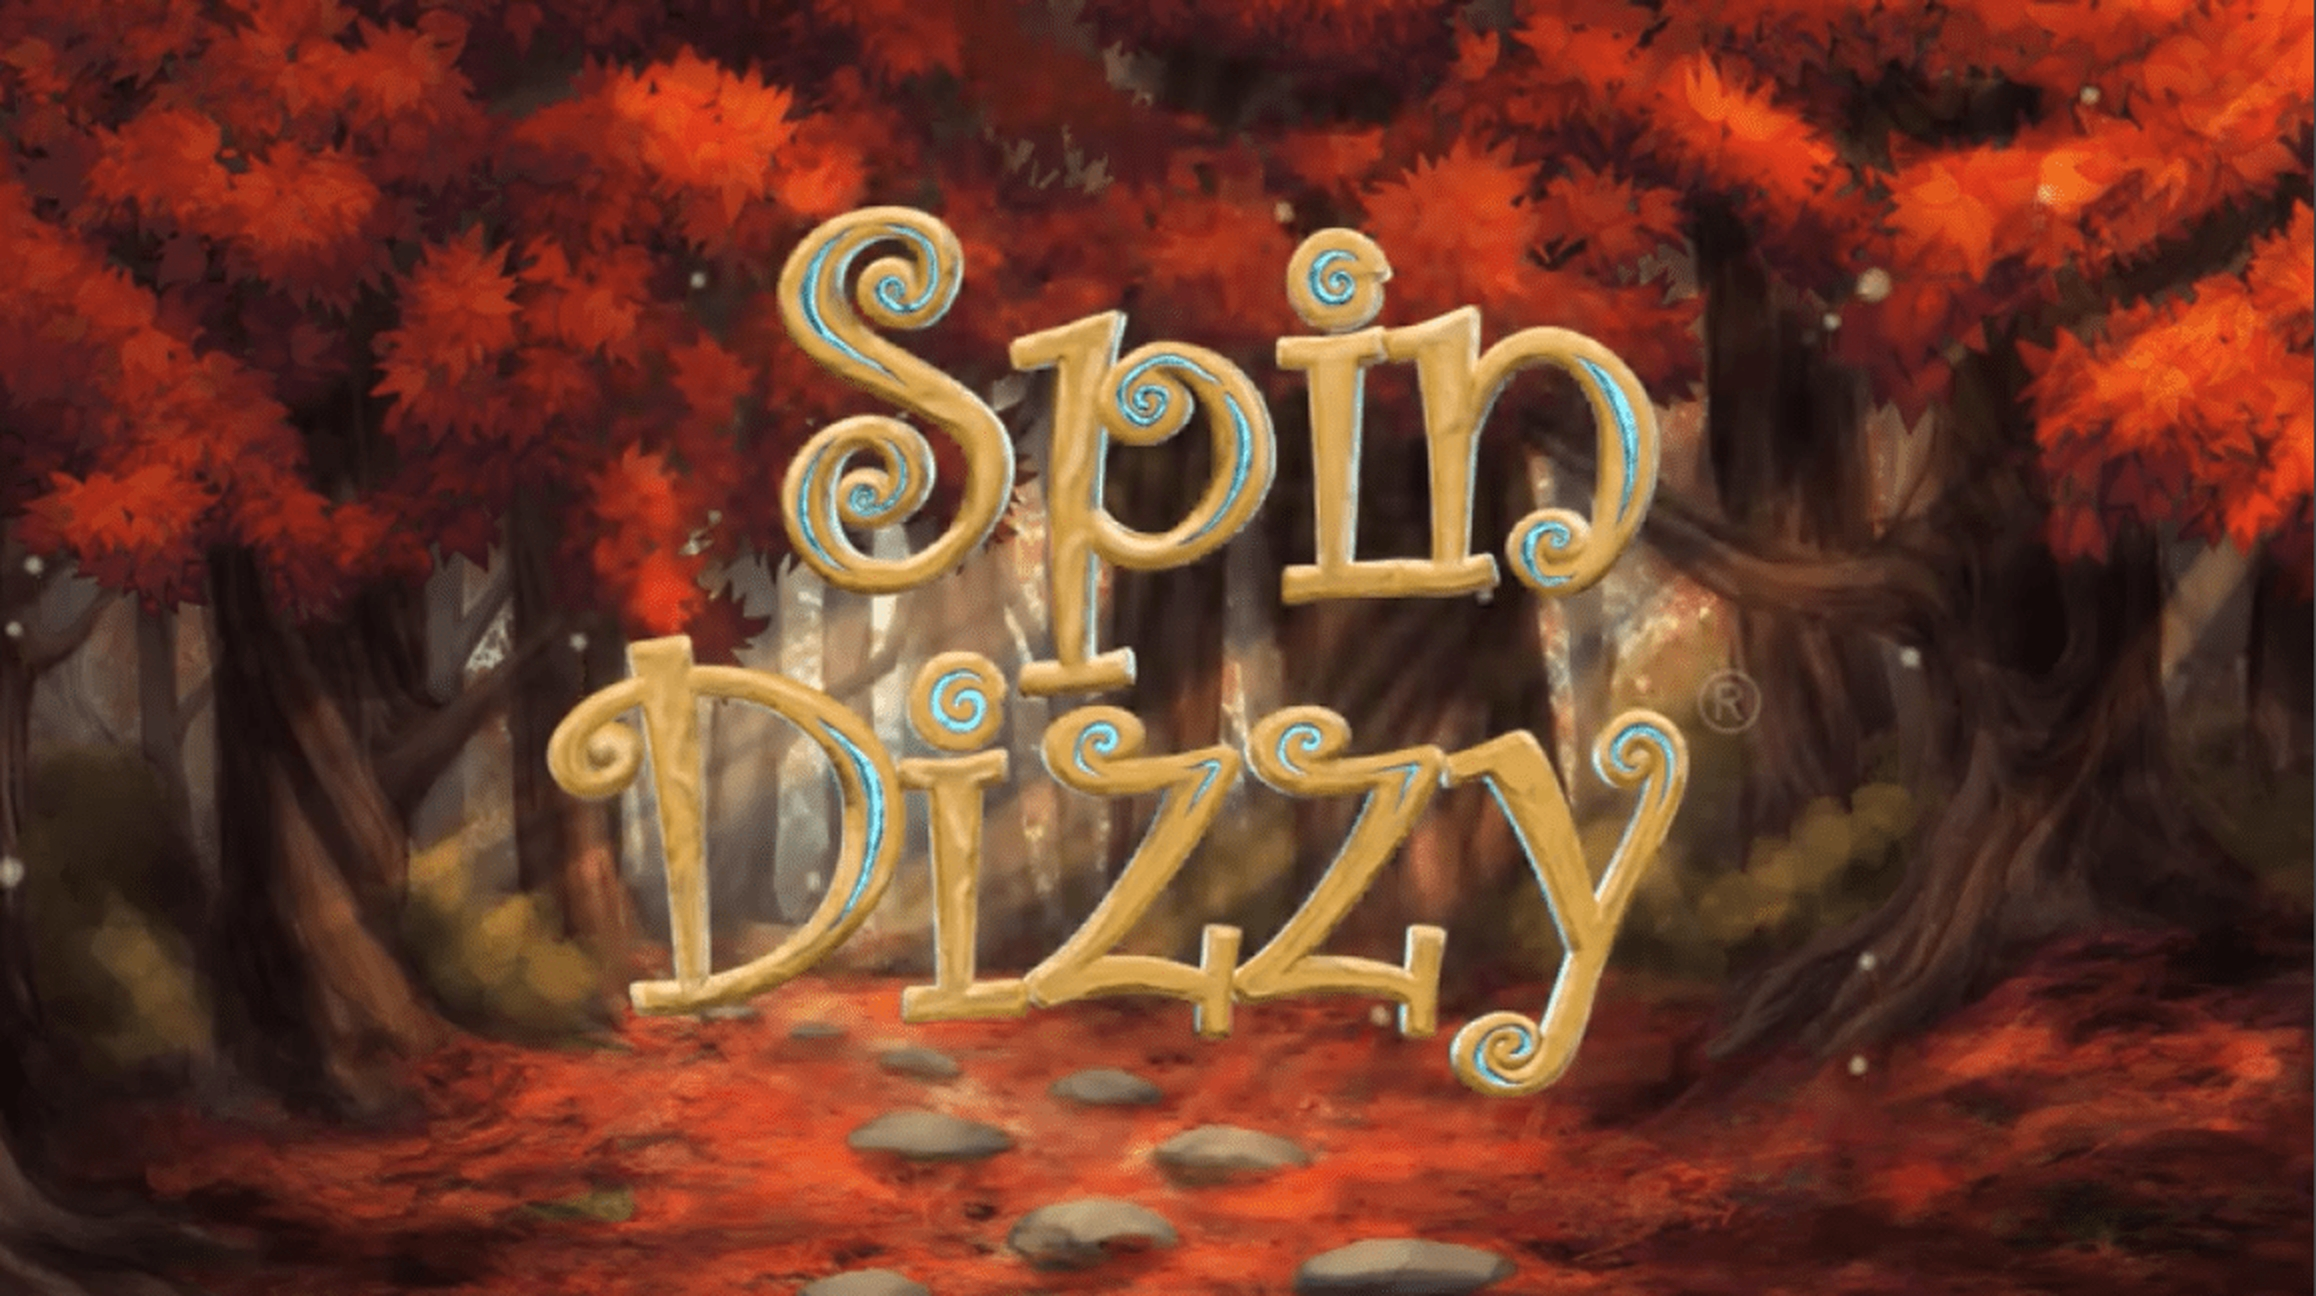 The Spin Dizzy Online Slot Demo Game by Realistic Games